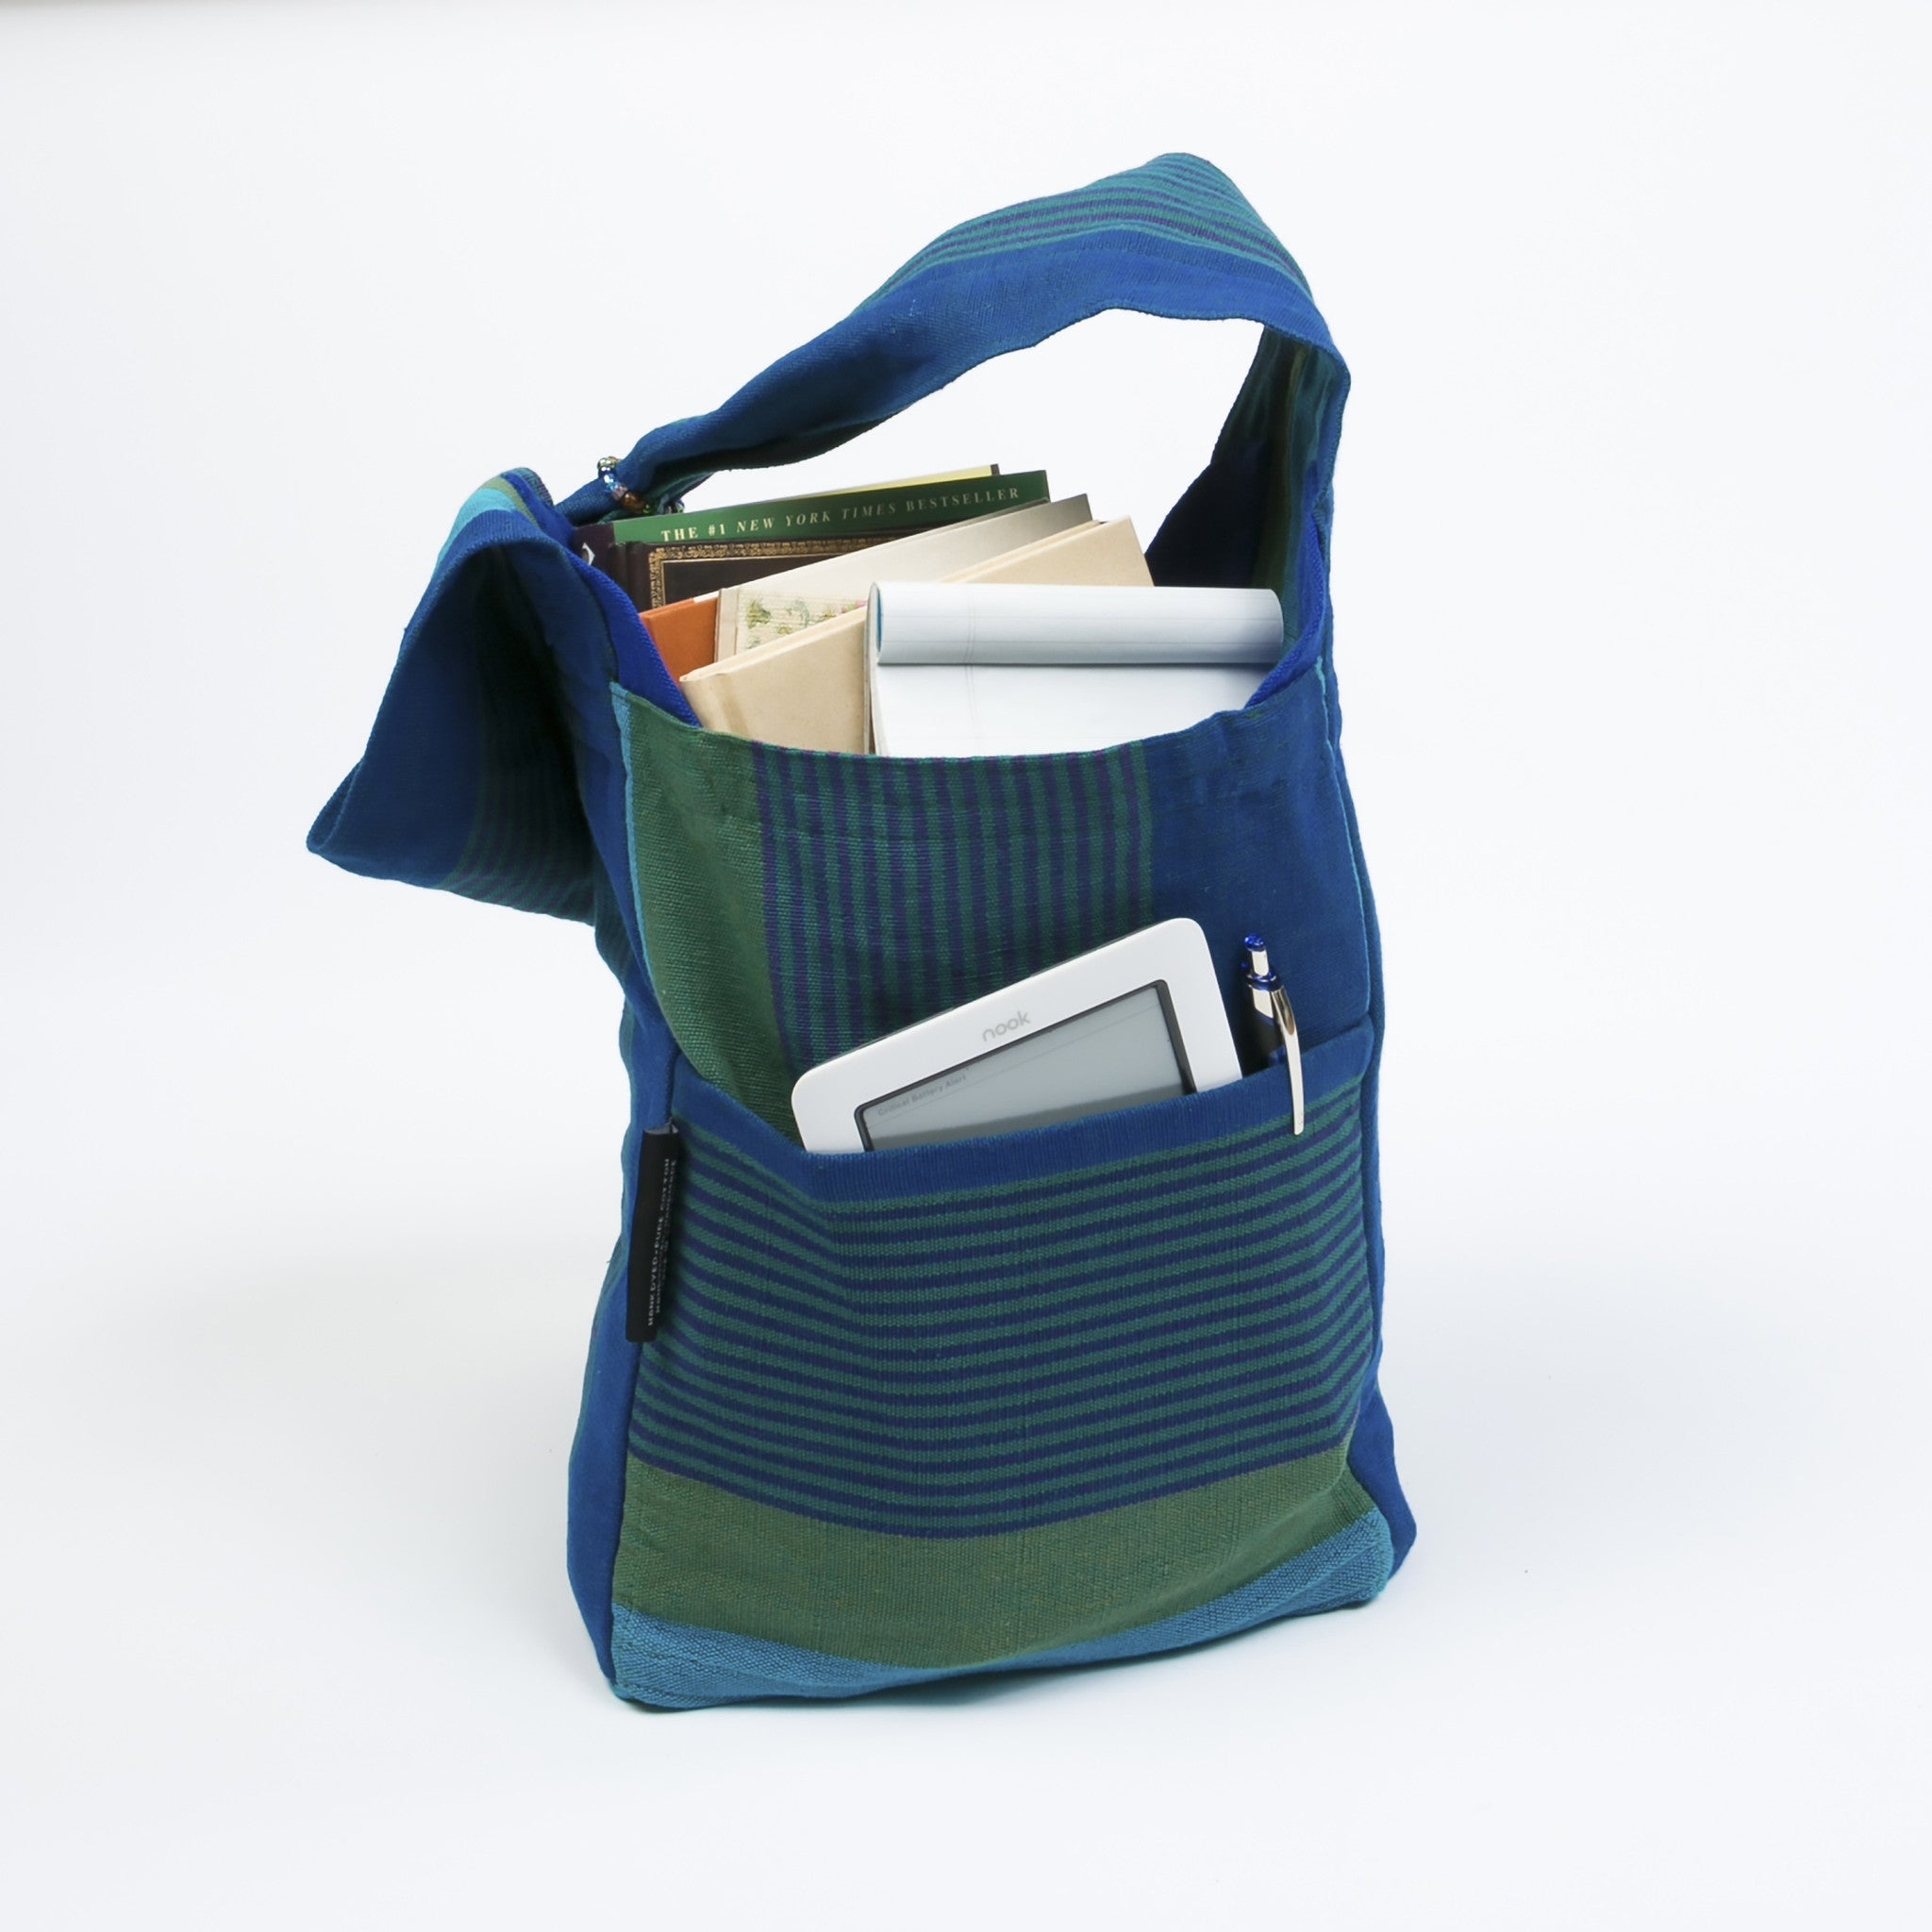 The Versatile Shoulder Bag - Great for carrying books! (sample fabric shown in medium size)